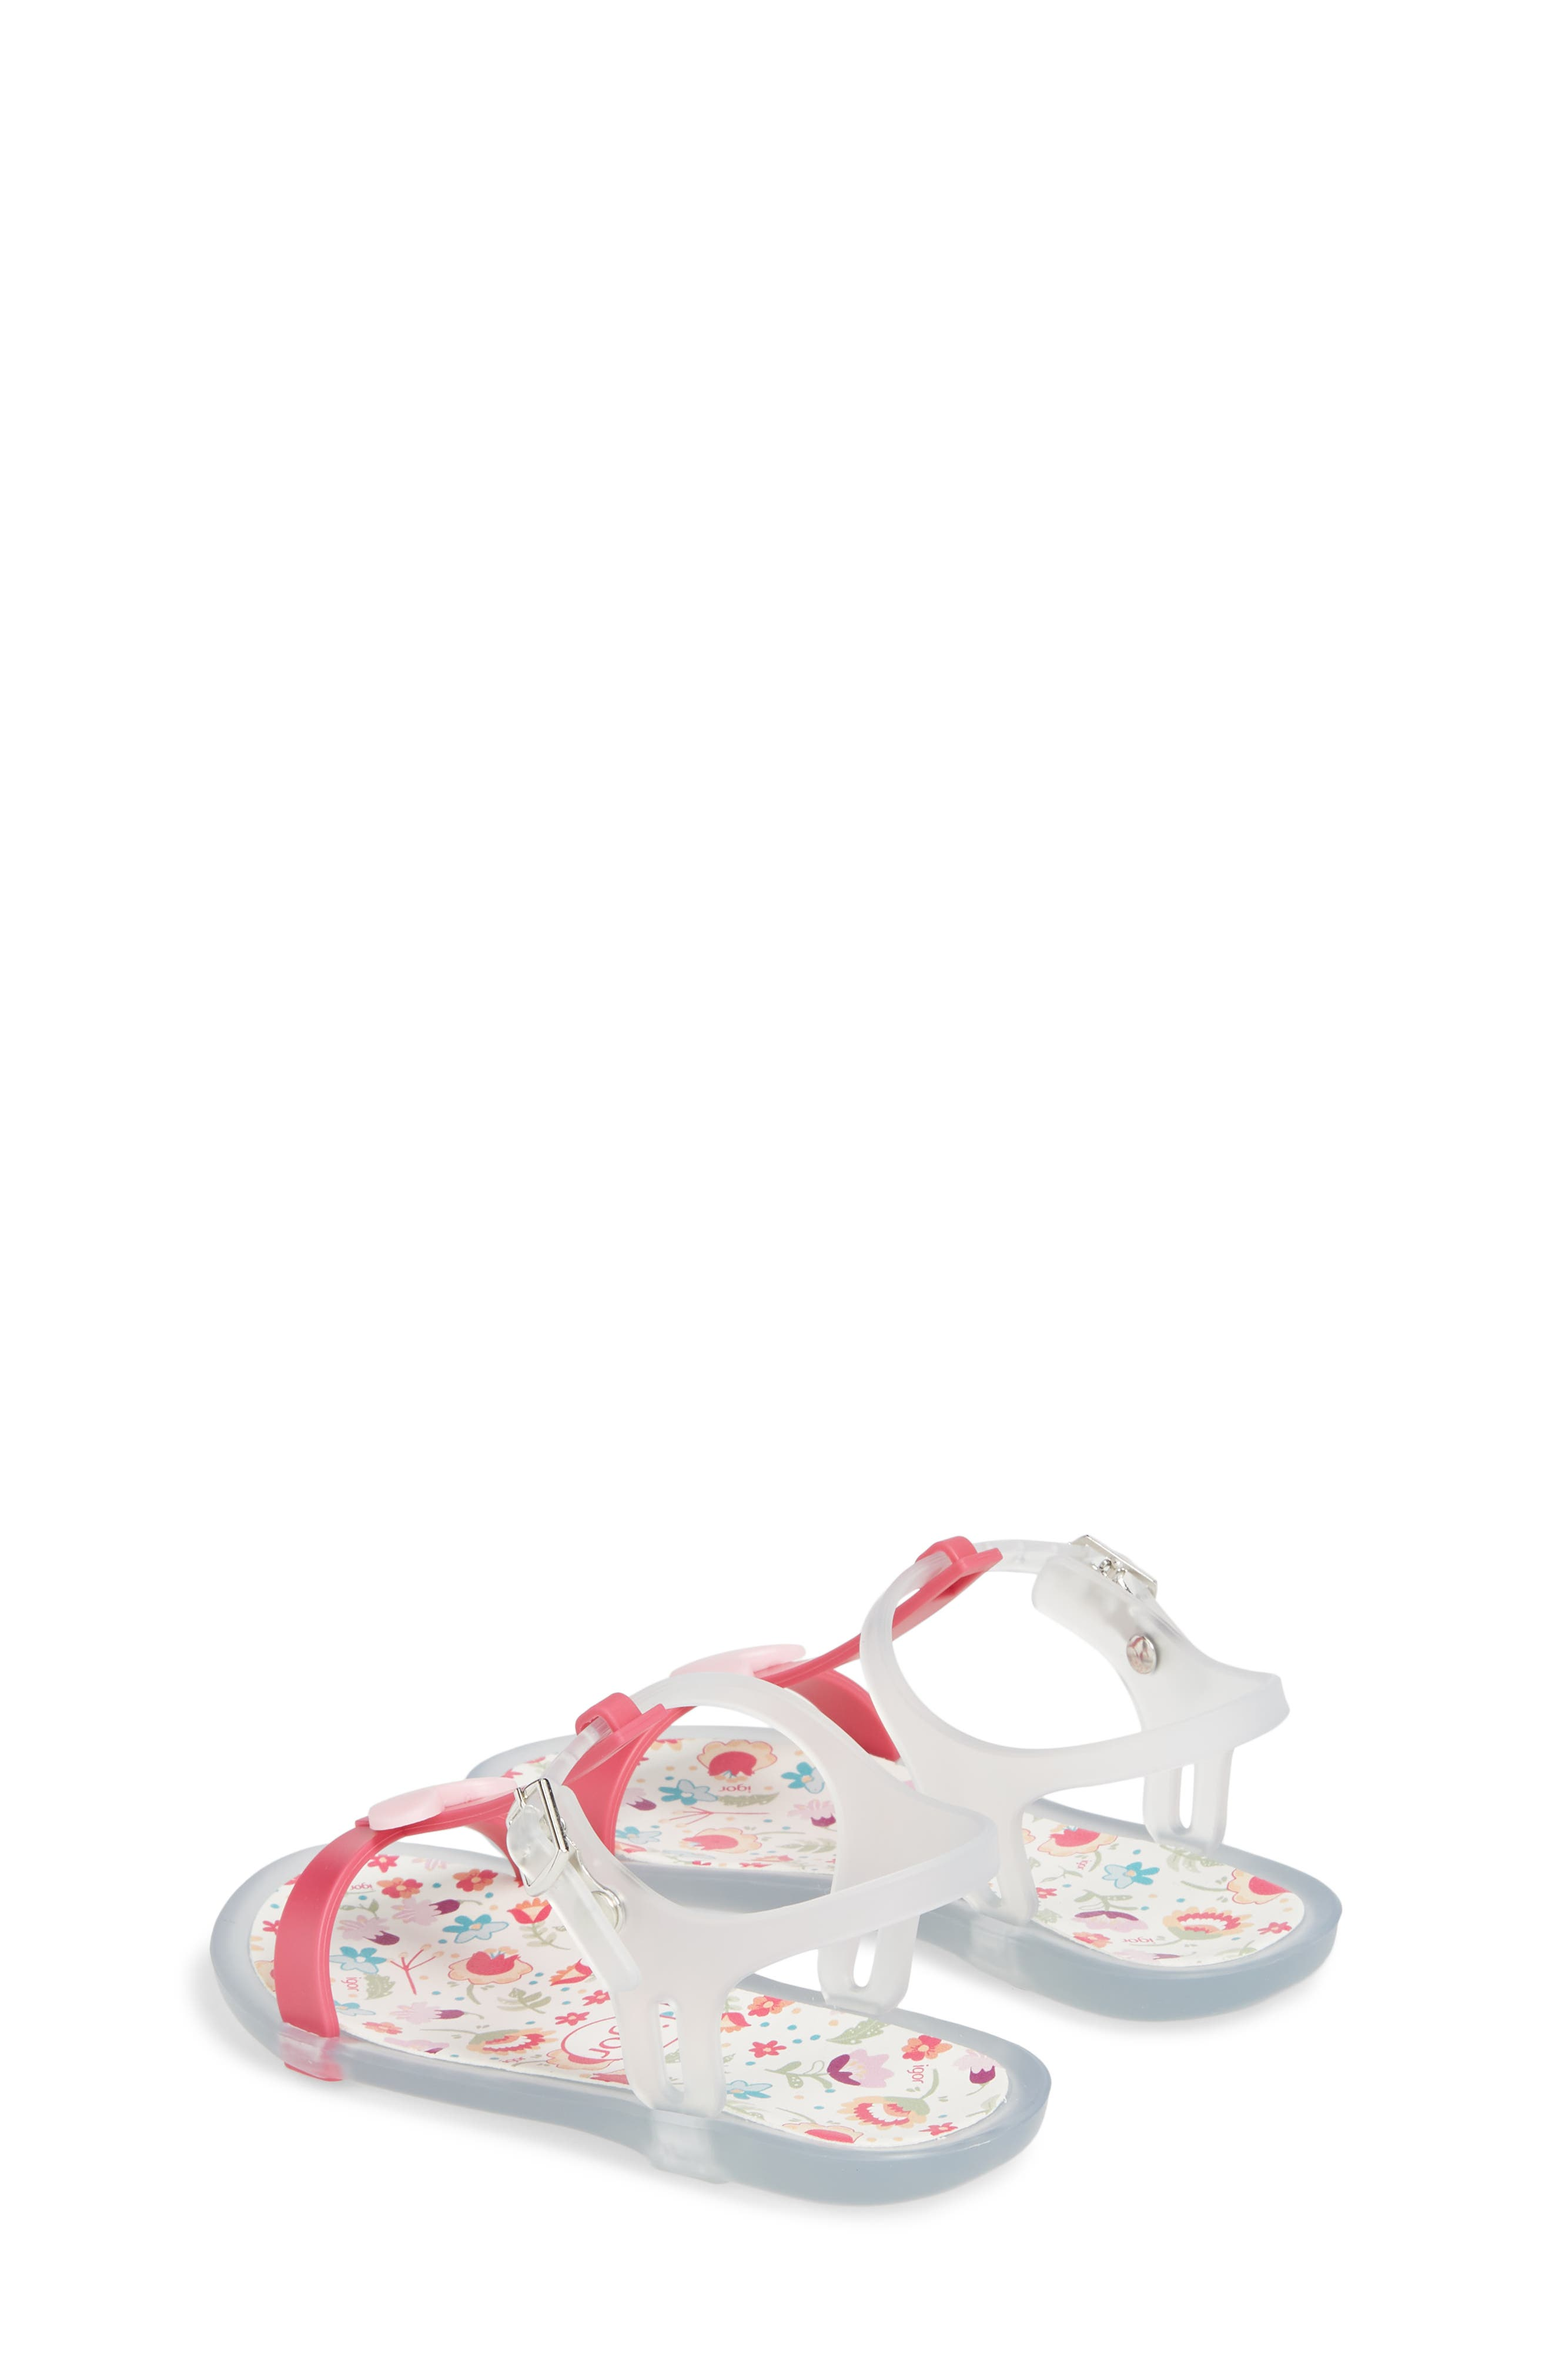 Tricia Cuore T-Strap Sandal,                             Alternate thumbnail 2, color,                             Fuchsia